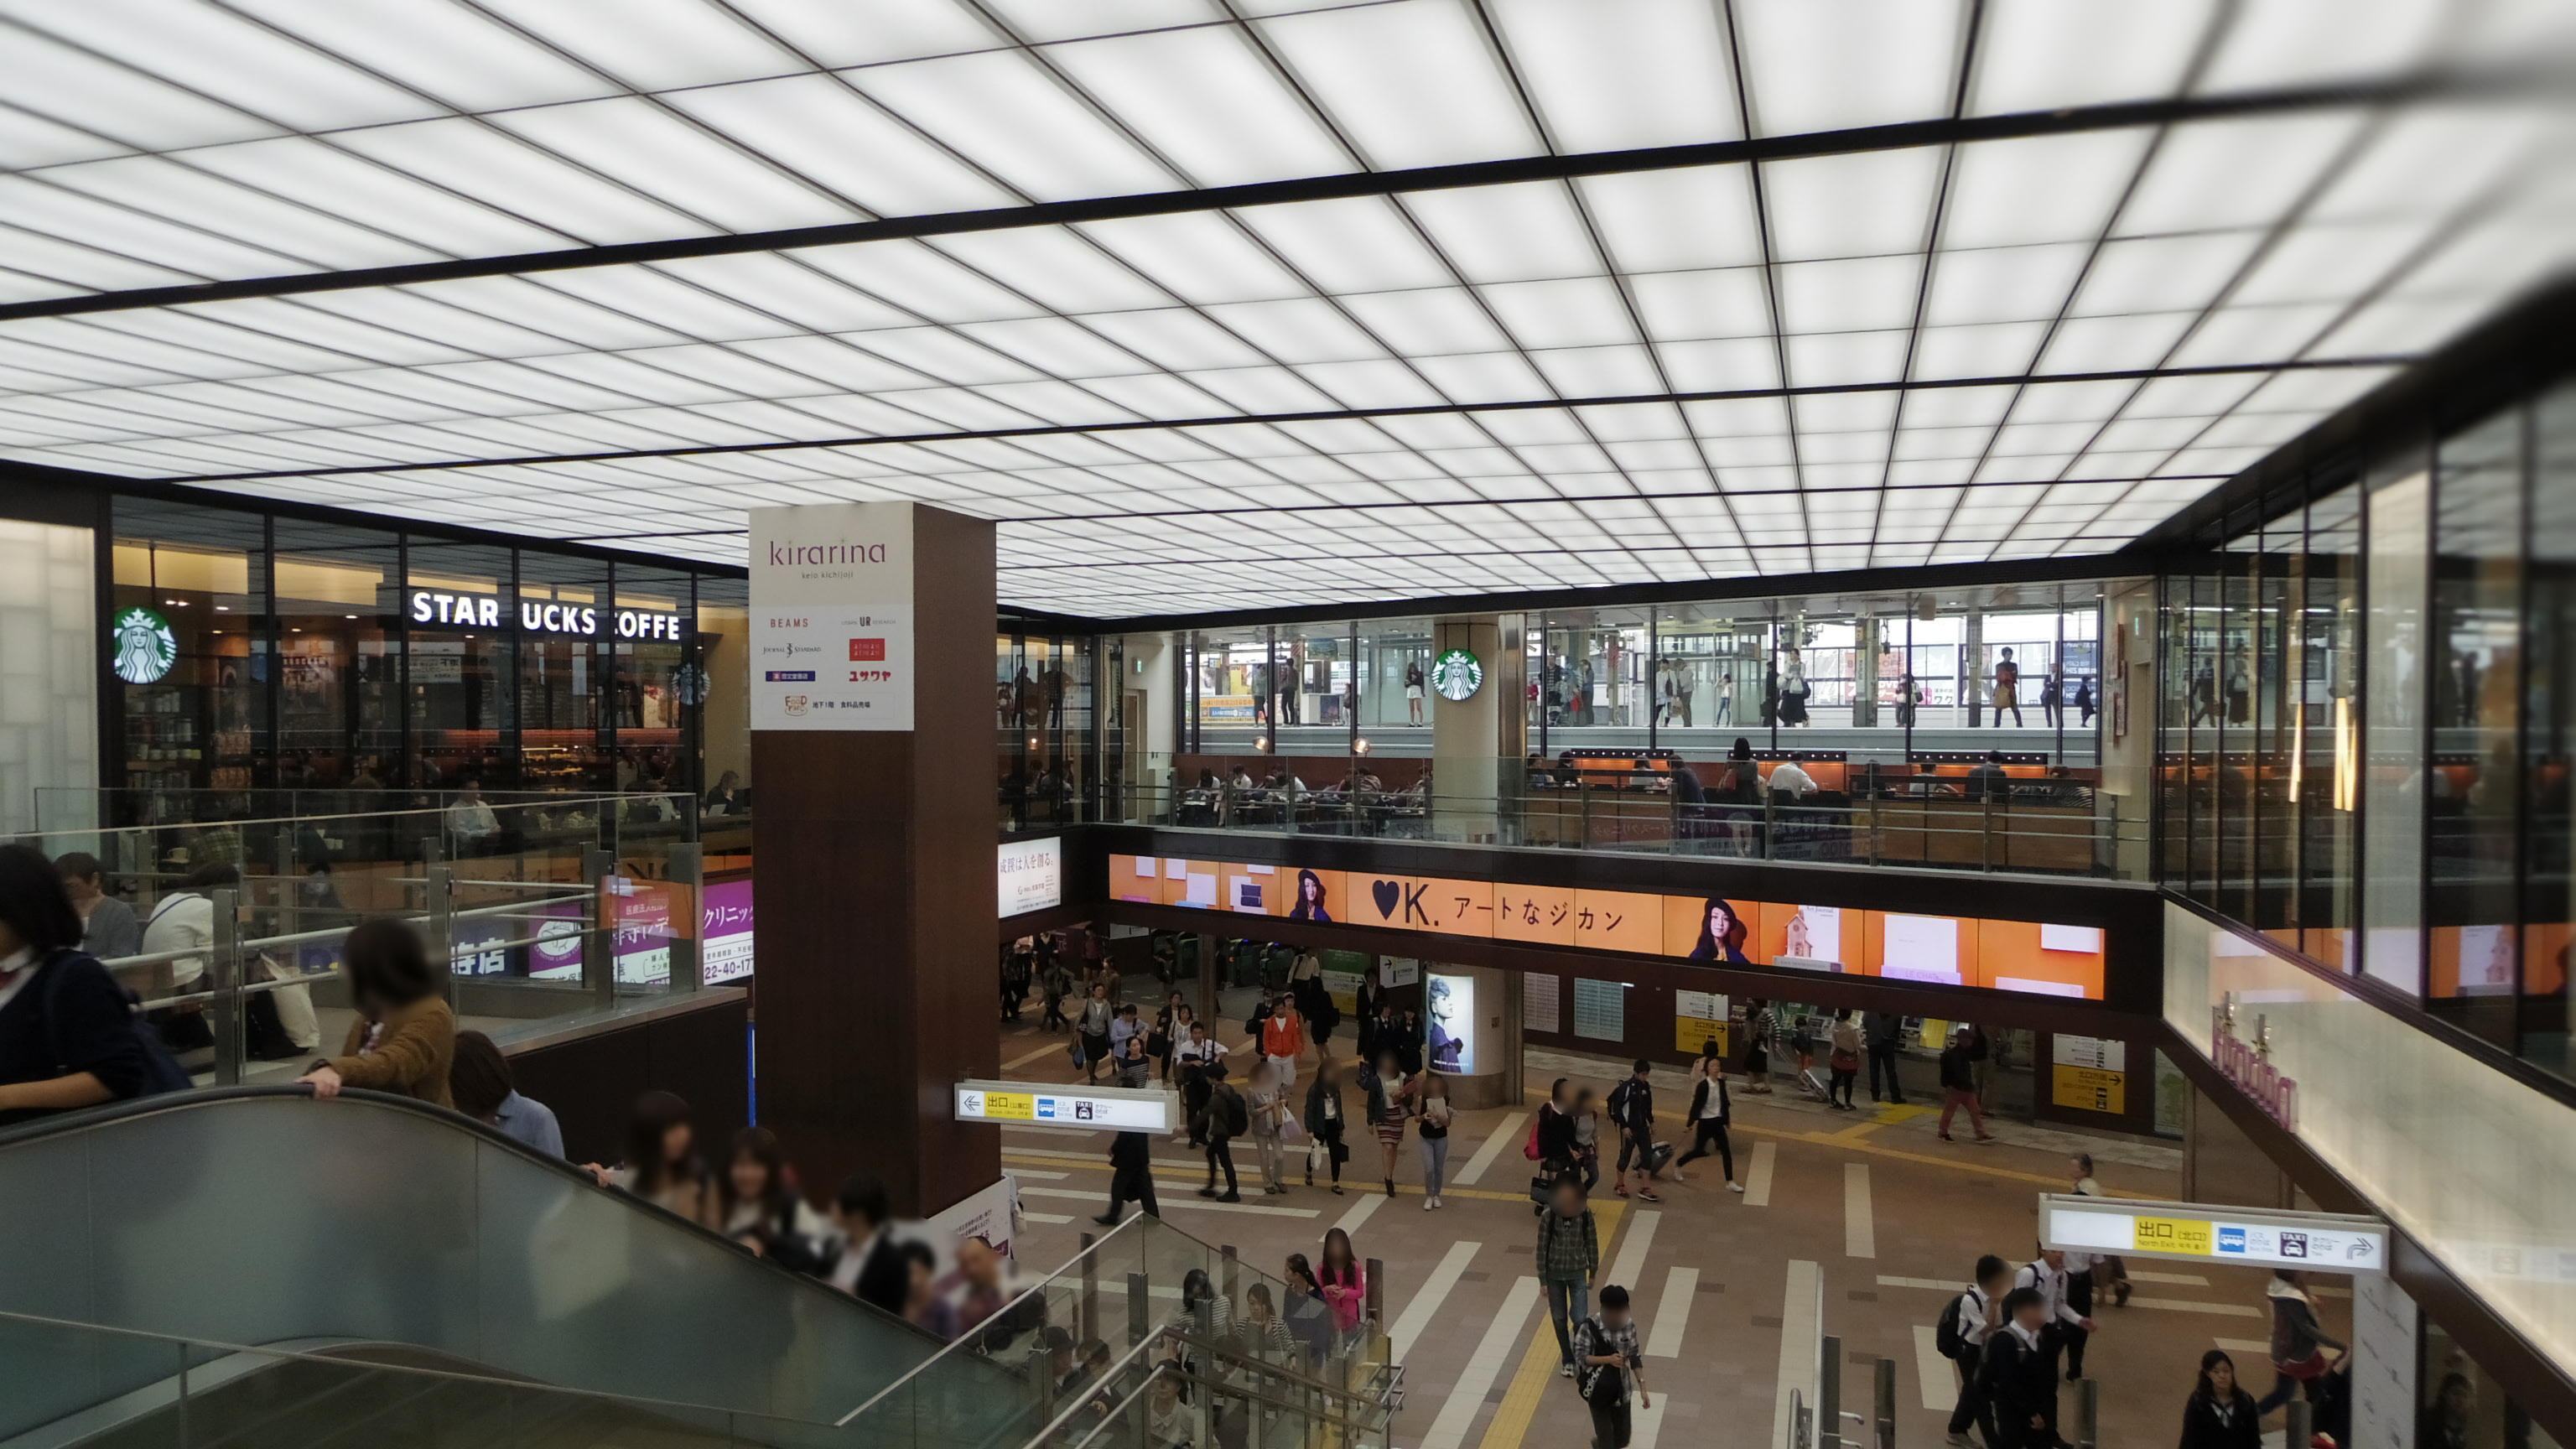 https://upload.wikimedia.org/wikipedia/commons/7/77/Keio_Kichijoji_Station_Escalator.JPG